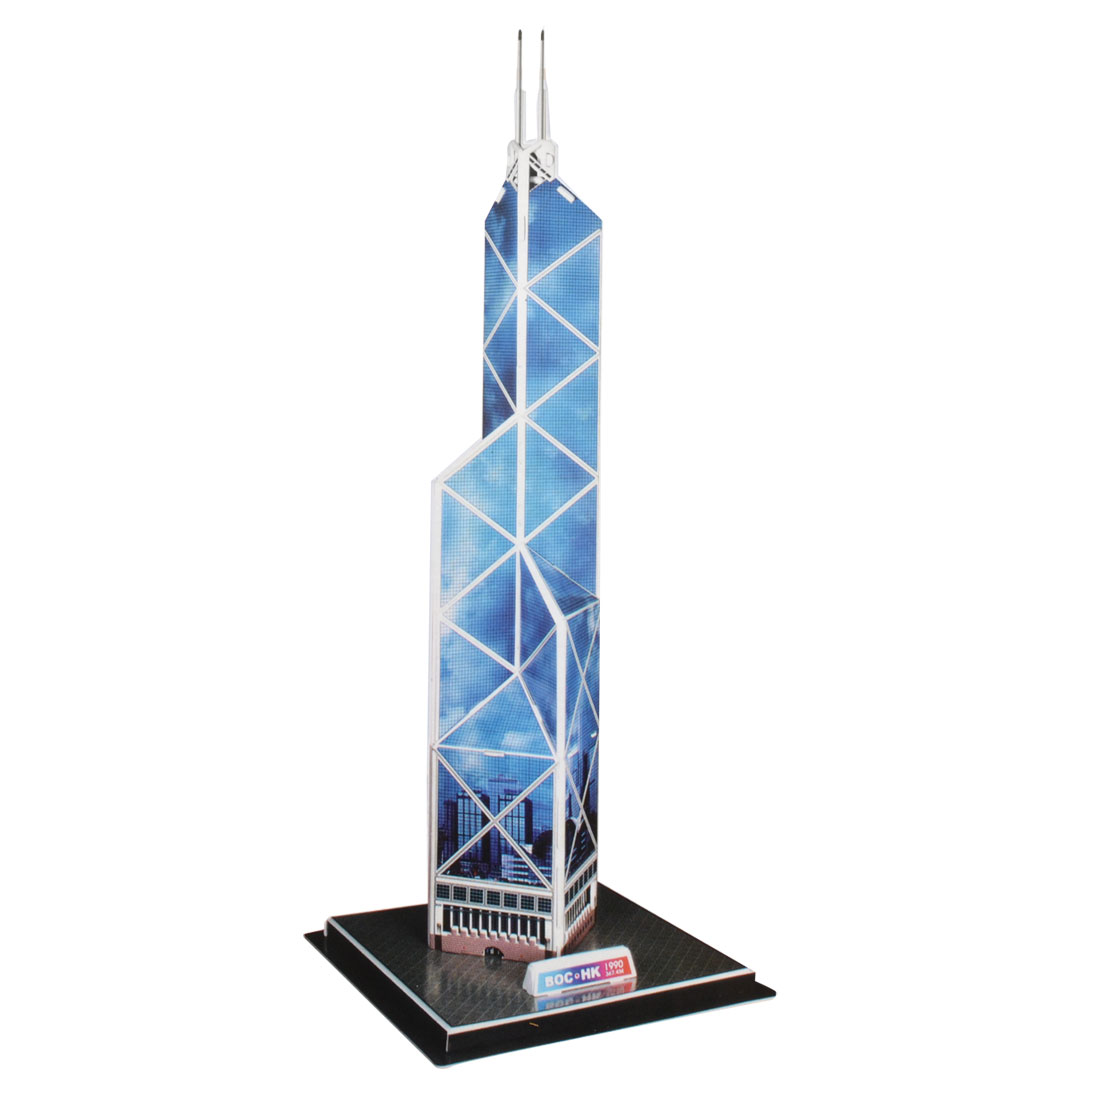 Foam Bank of China Tower Model 3D DIY Assembled Puzzle Toy for Kid